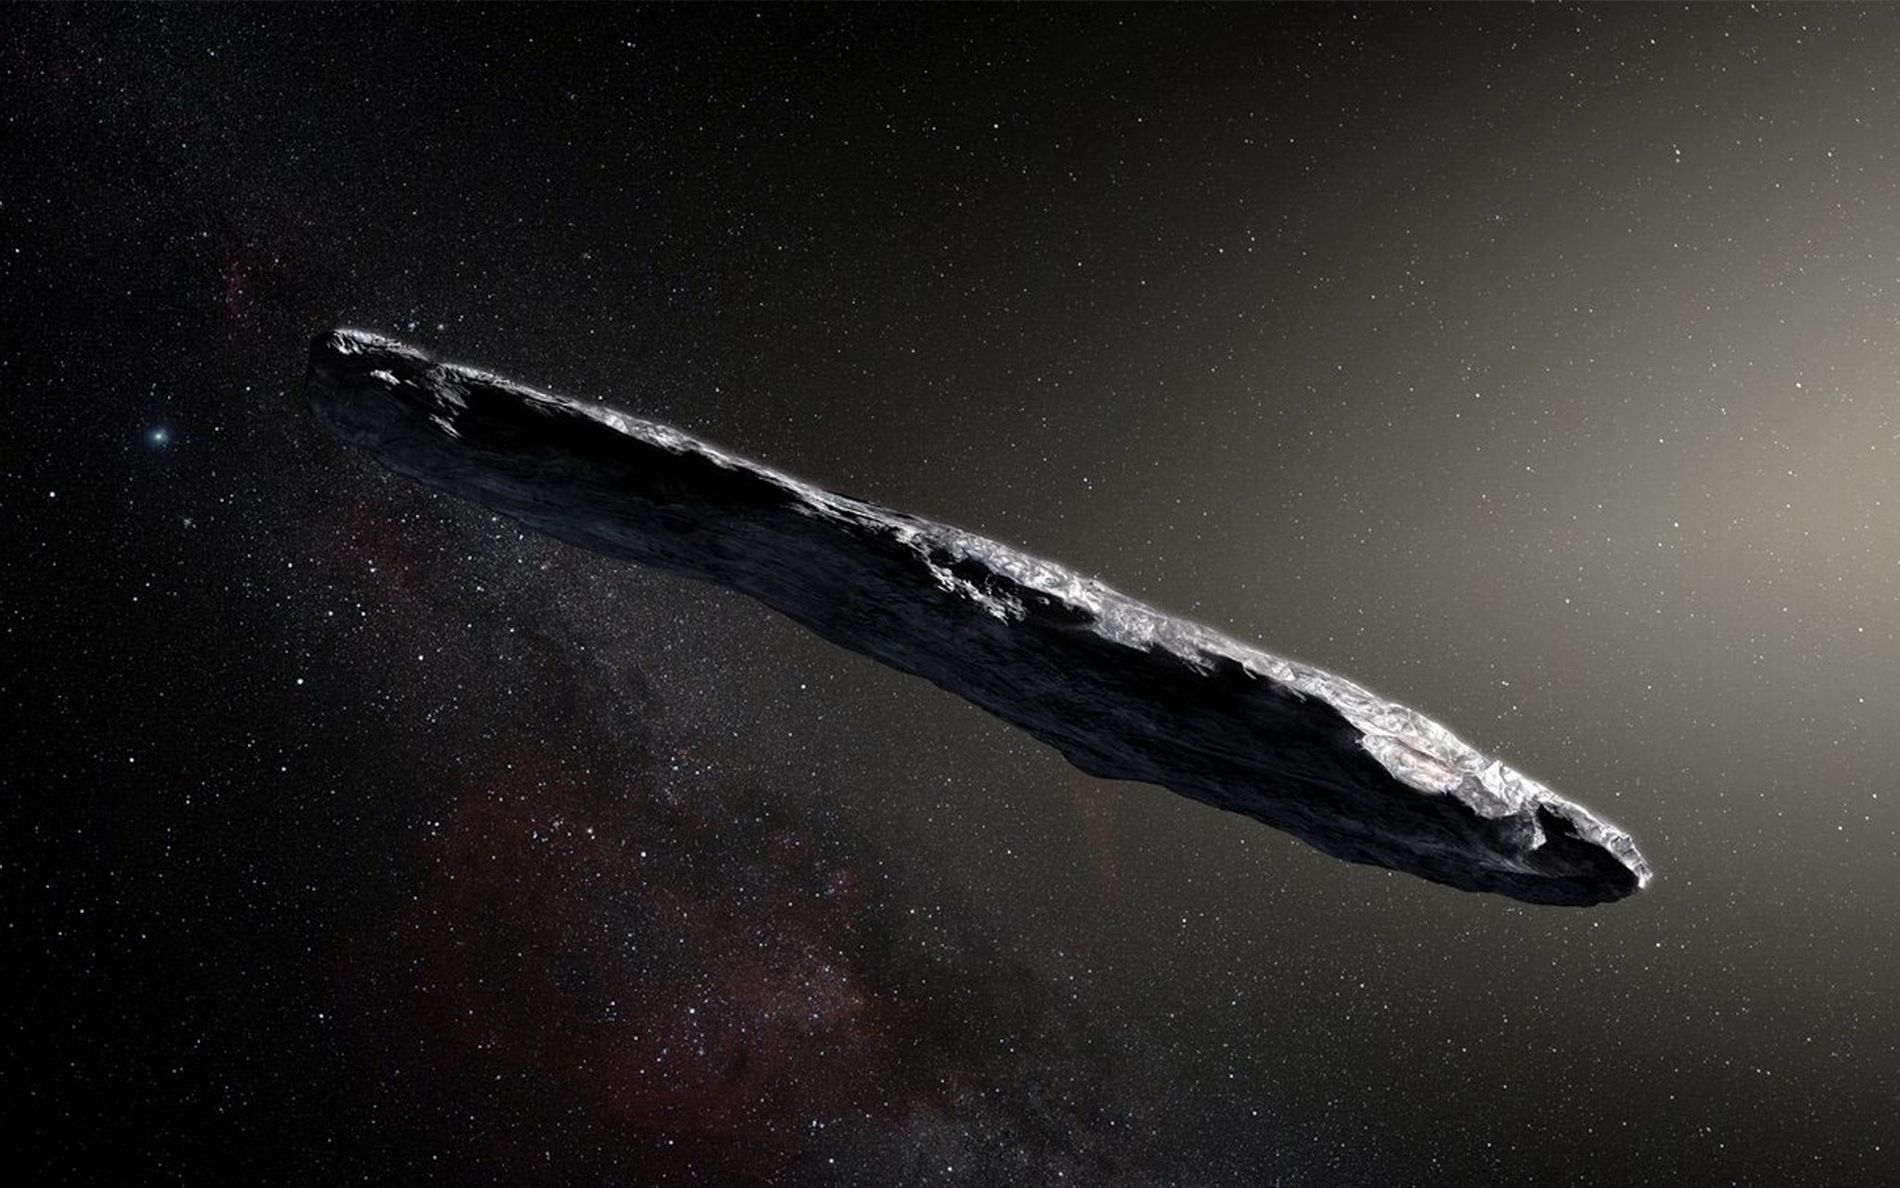 Artist's concept of interstellar asteroid 1I/2017 U1 ('Oumuamua) as it passed through the solar system after its discovery in October 2017.